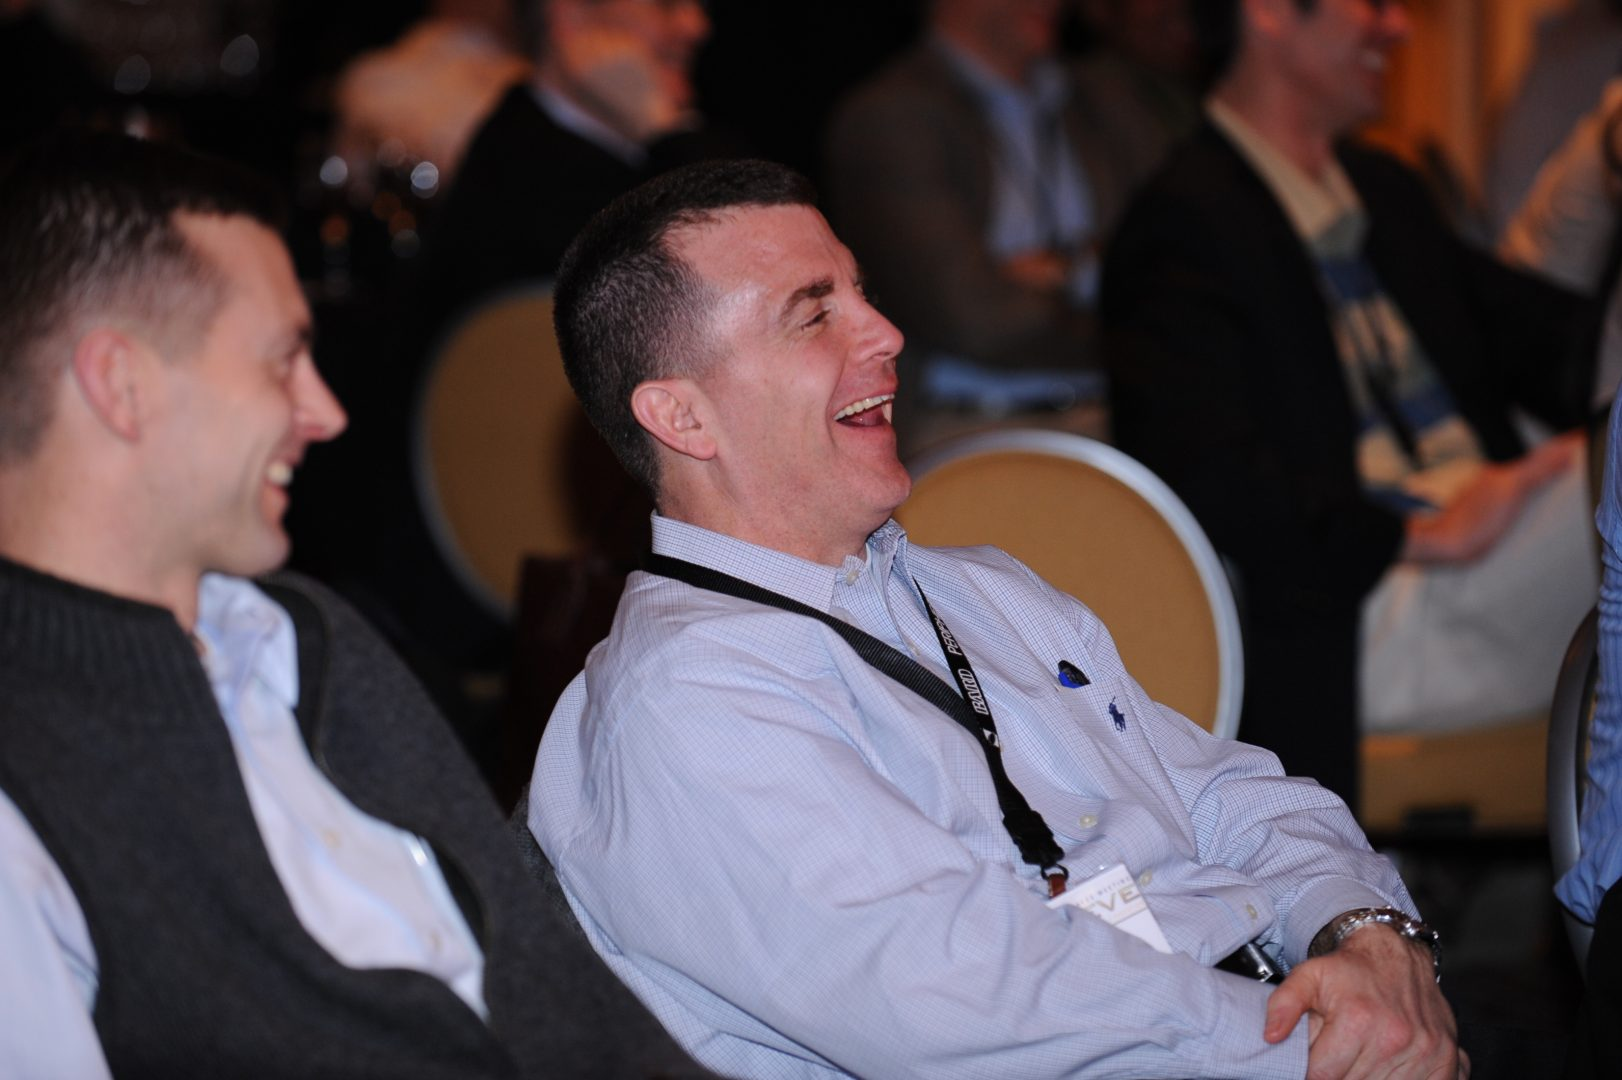 man at conference laughing